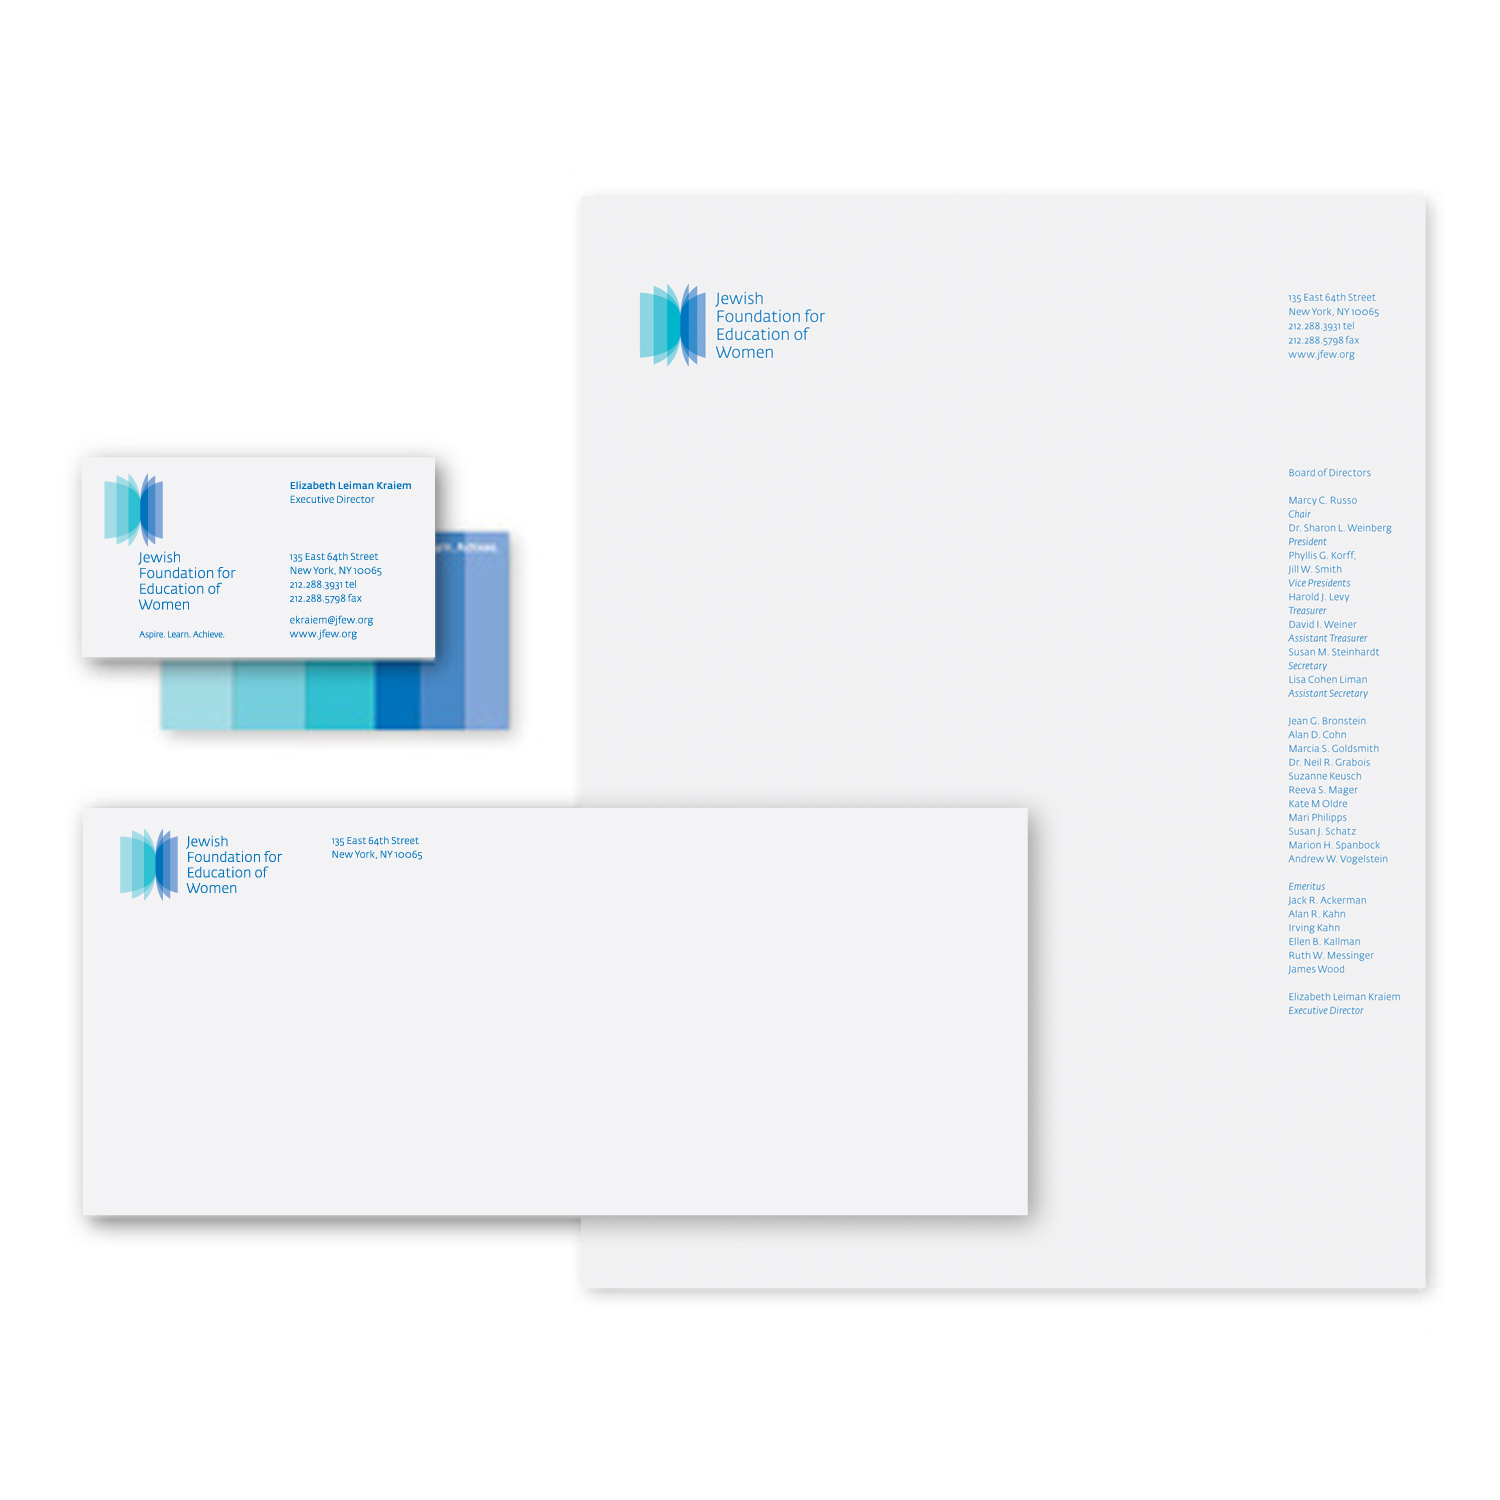 Project image 3 for JFEW Identity and Printed Matter, Jewish Foundation for Education of Women